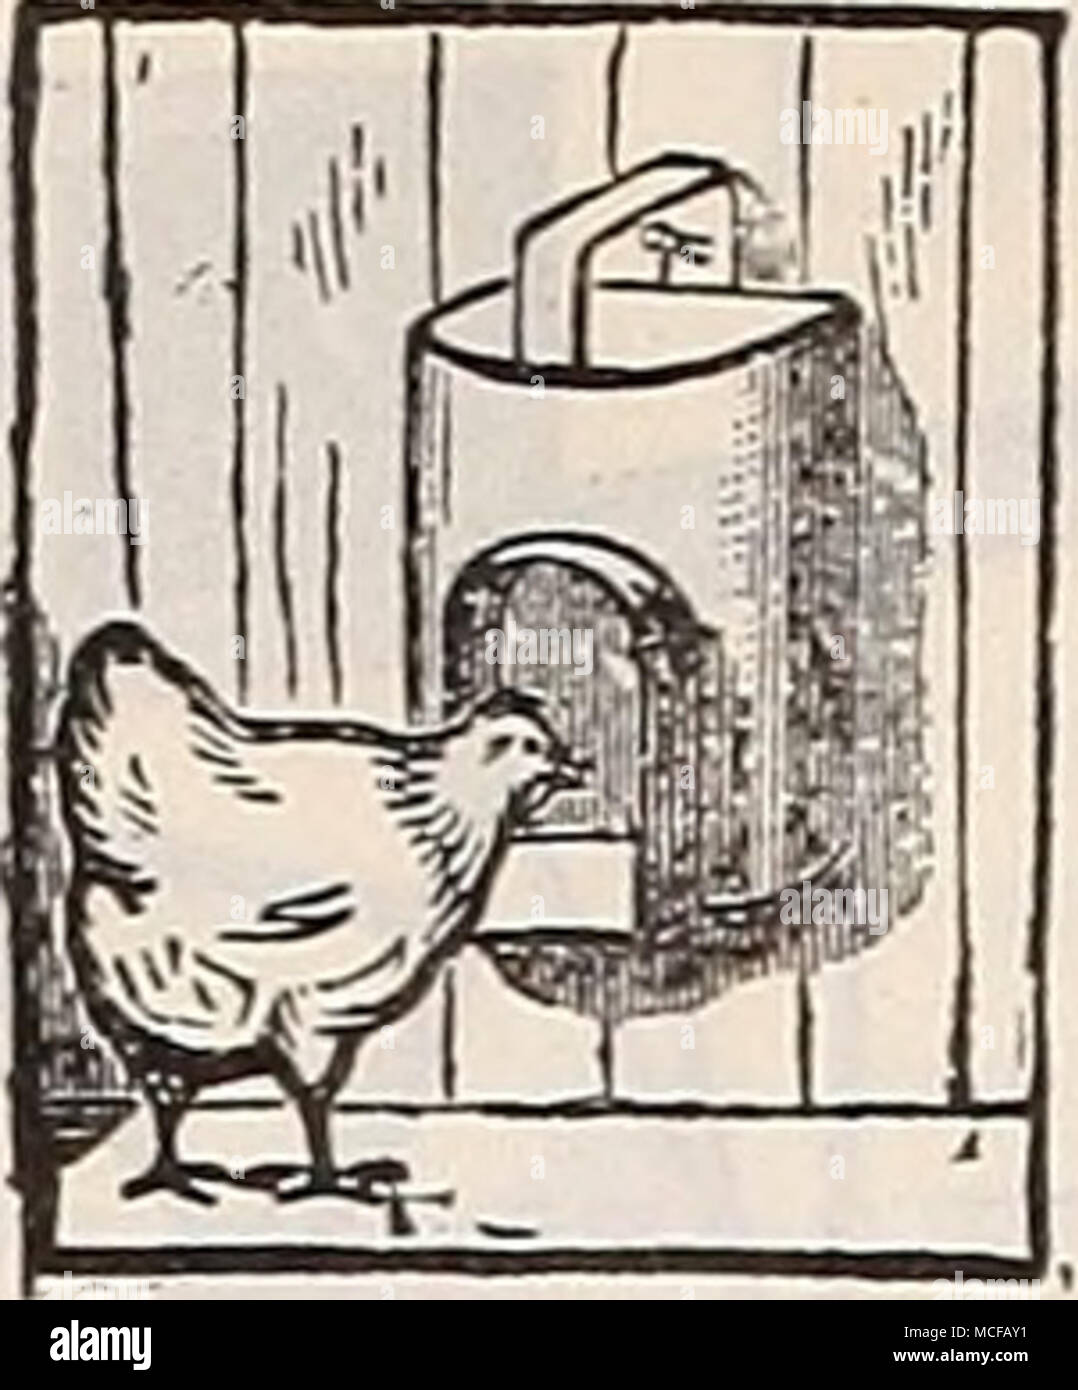 """. Dreer's Poultry Fount. Hub"""" Fount. 40 cts., 25 lbs. 75 cts., - Stock Image"""